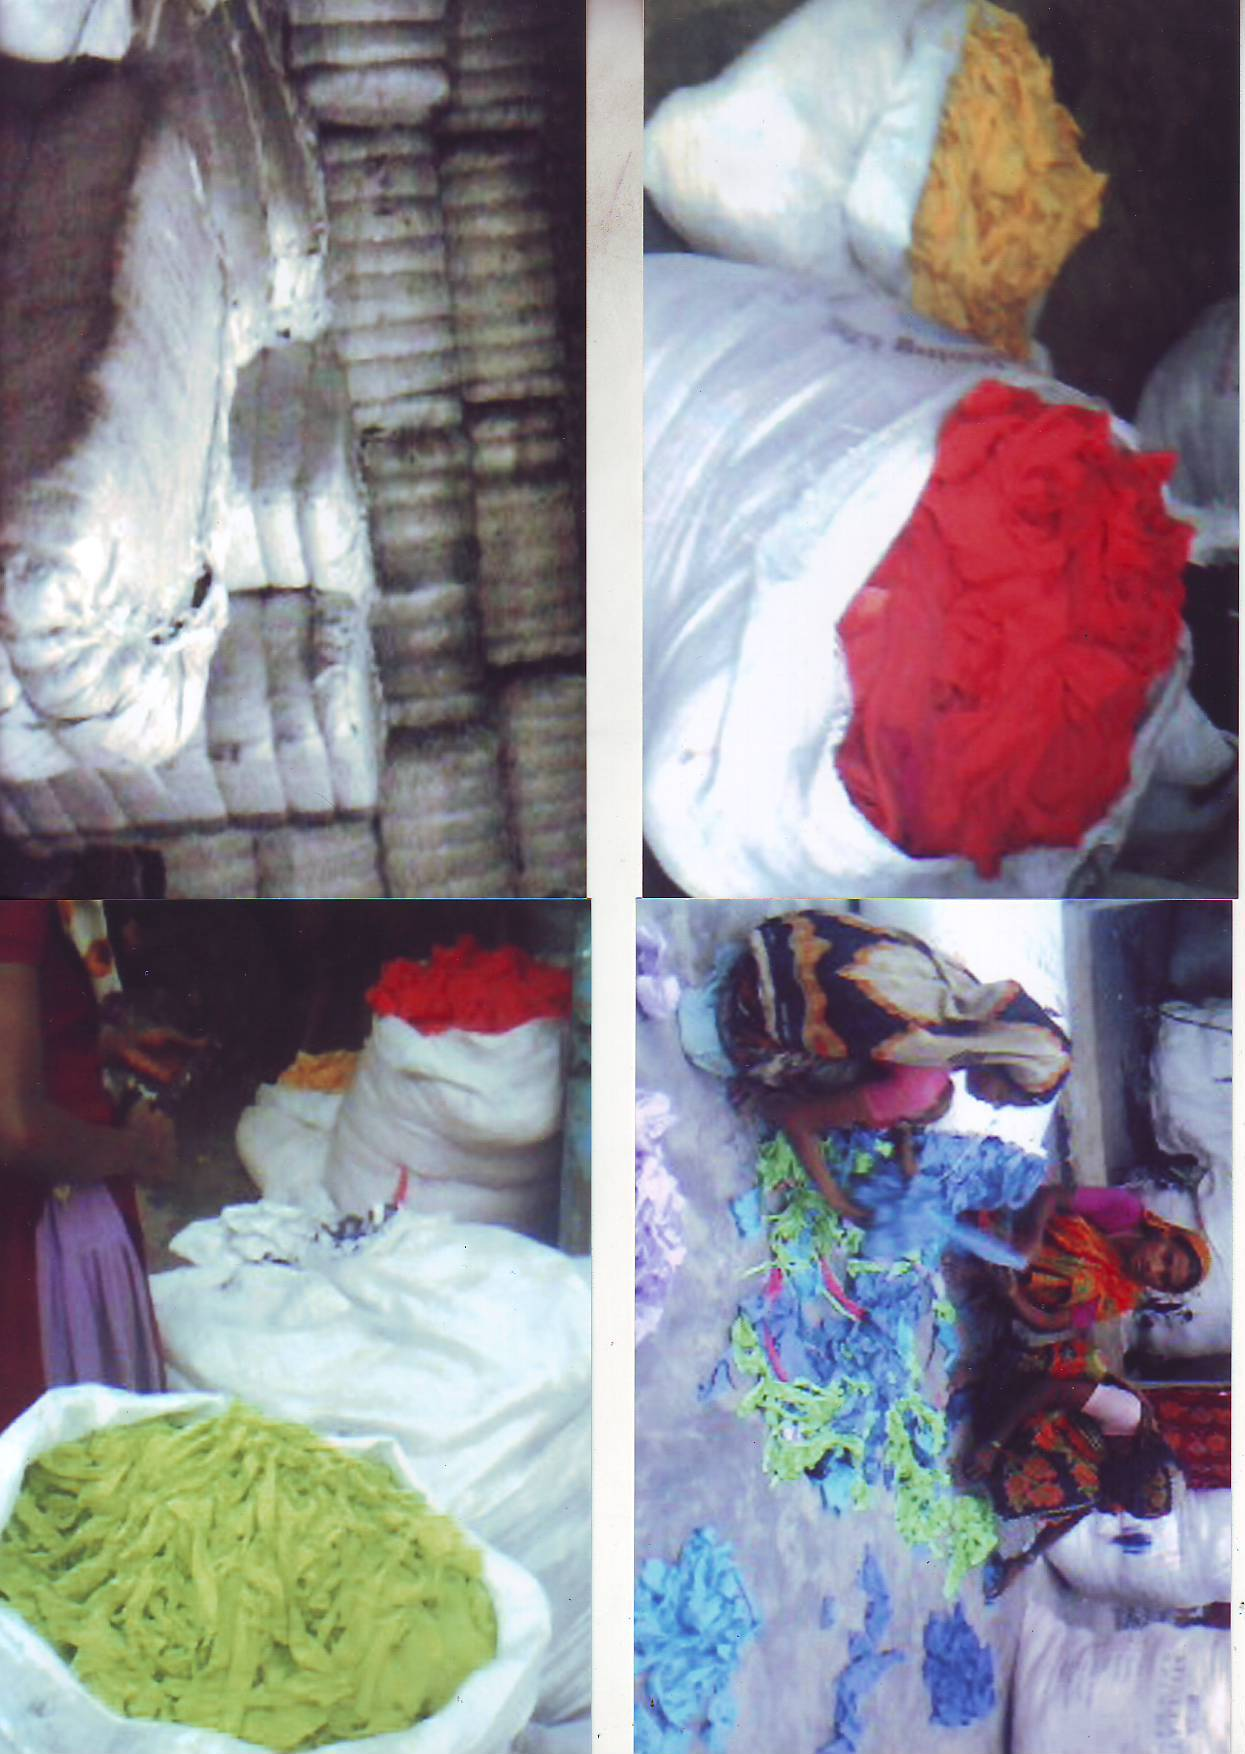 SUPPLY OF TEXTILE WASTE (HOSIERY COTTON CLIP & WIPING RAGS ) FROM DHAKA, BANGLADESH.